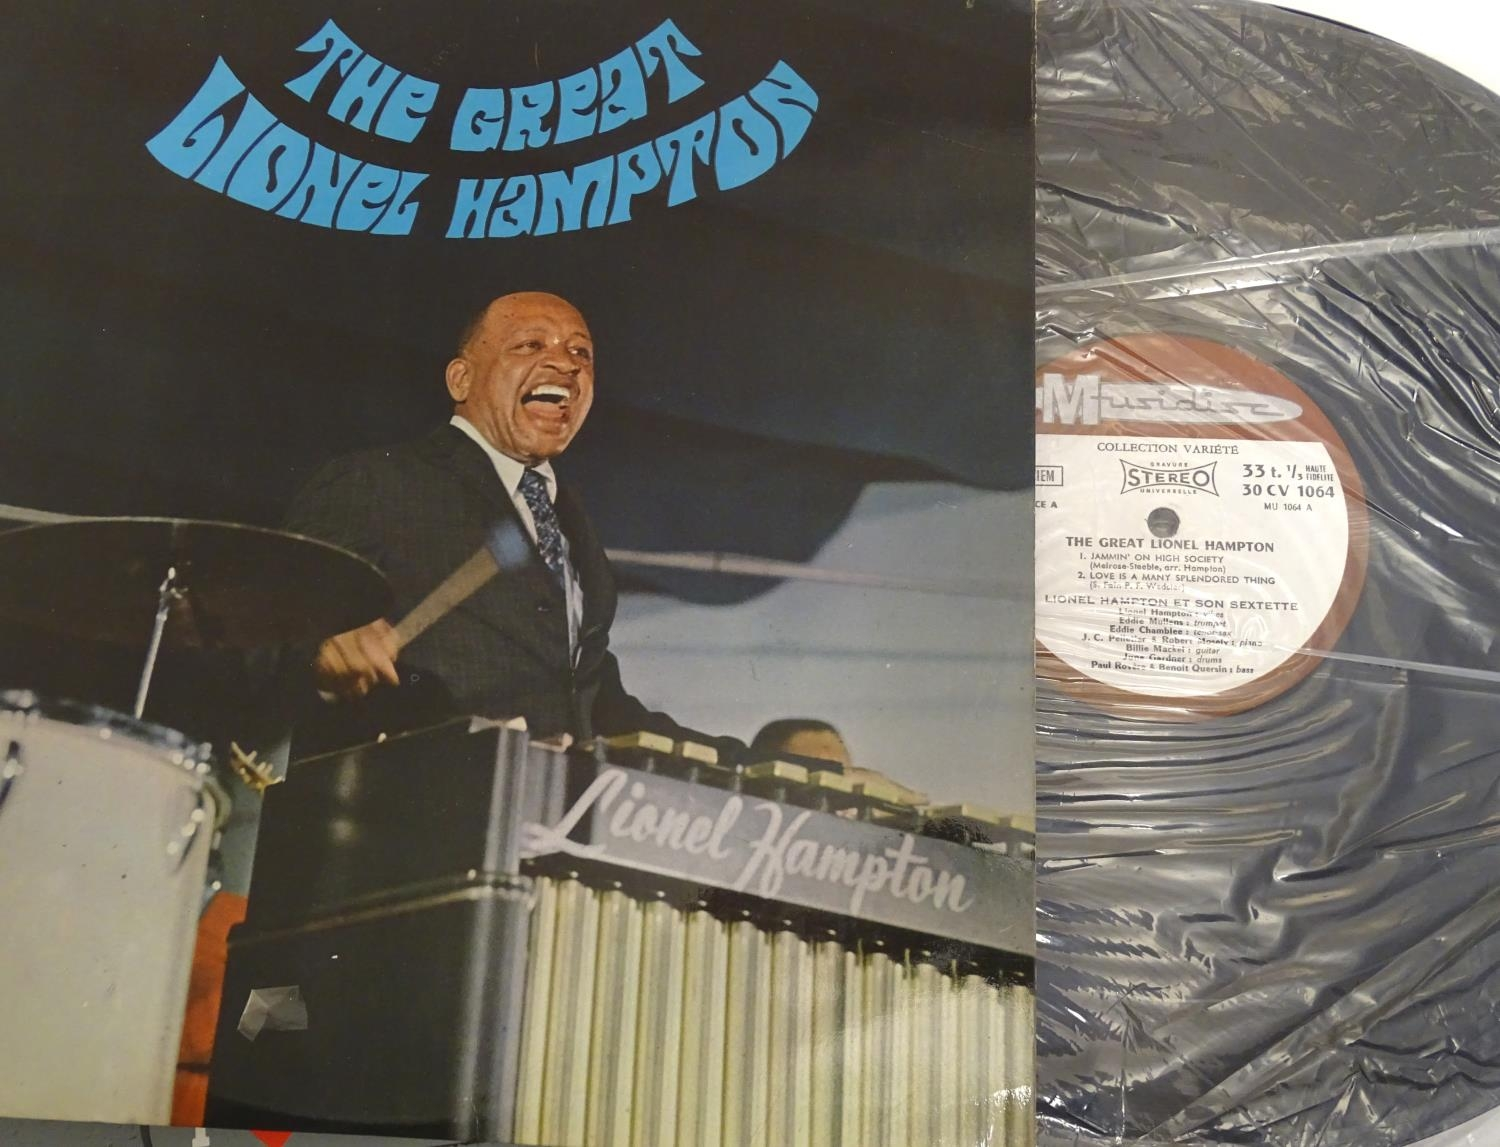 A collection of 20thC 33 rpm Vinyl records / LPs, - Jazz, comprising: The Eddie Condon Floor Show 2, - Image 12 of 19